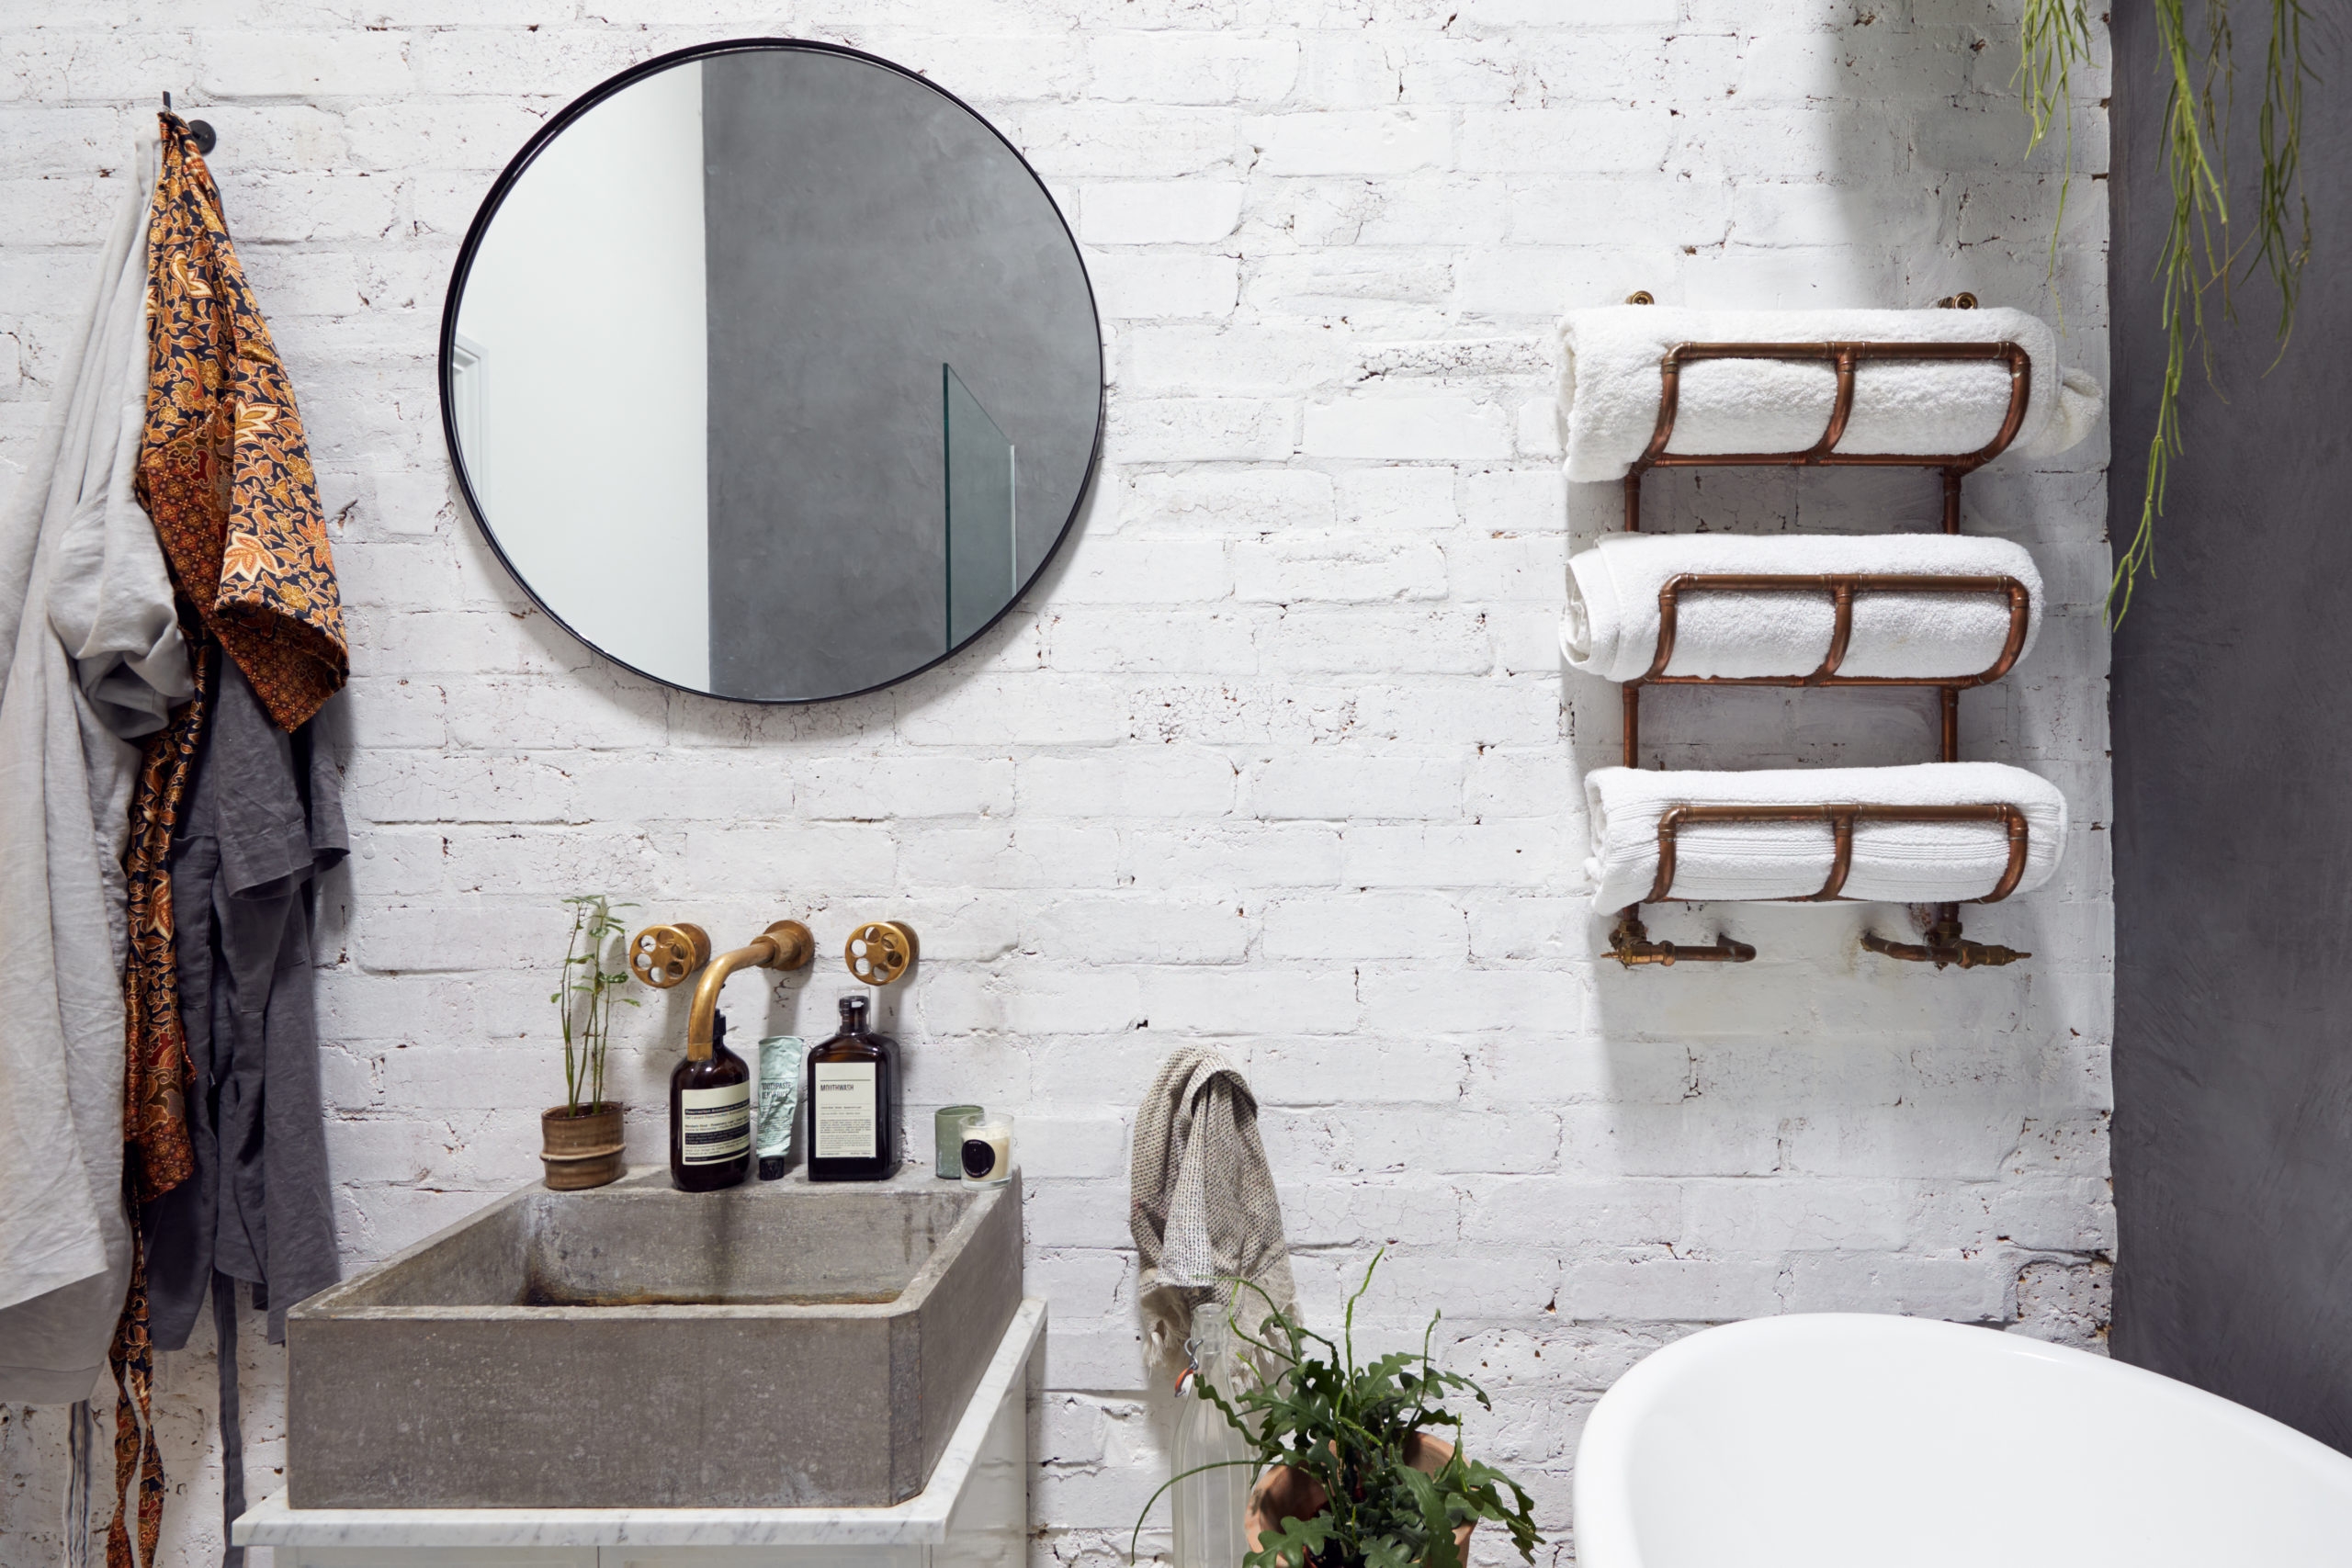 Things You Should Have In Your Bathroom